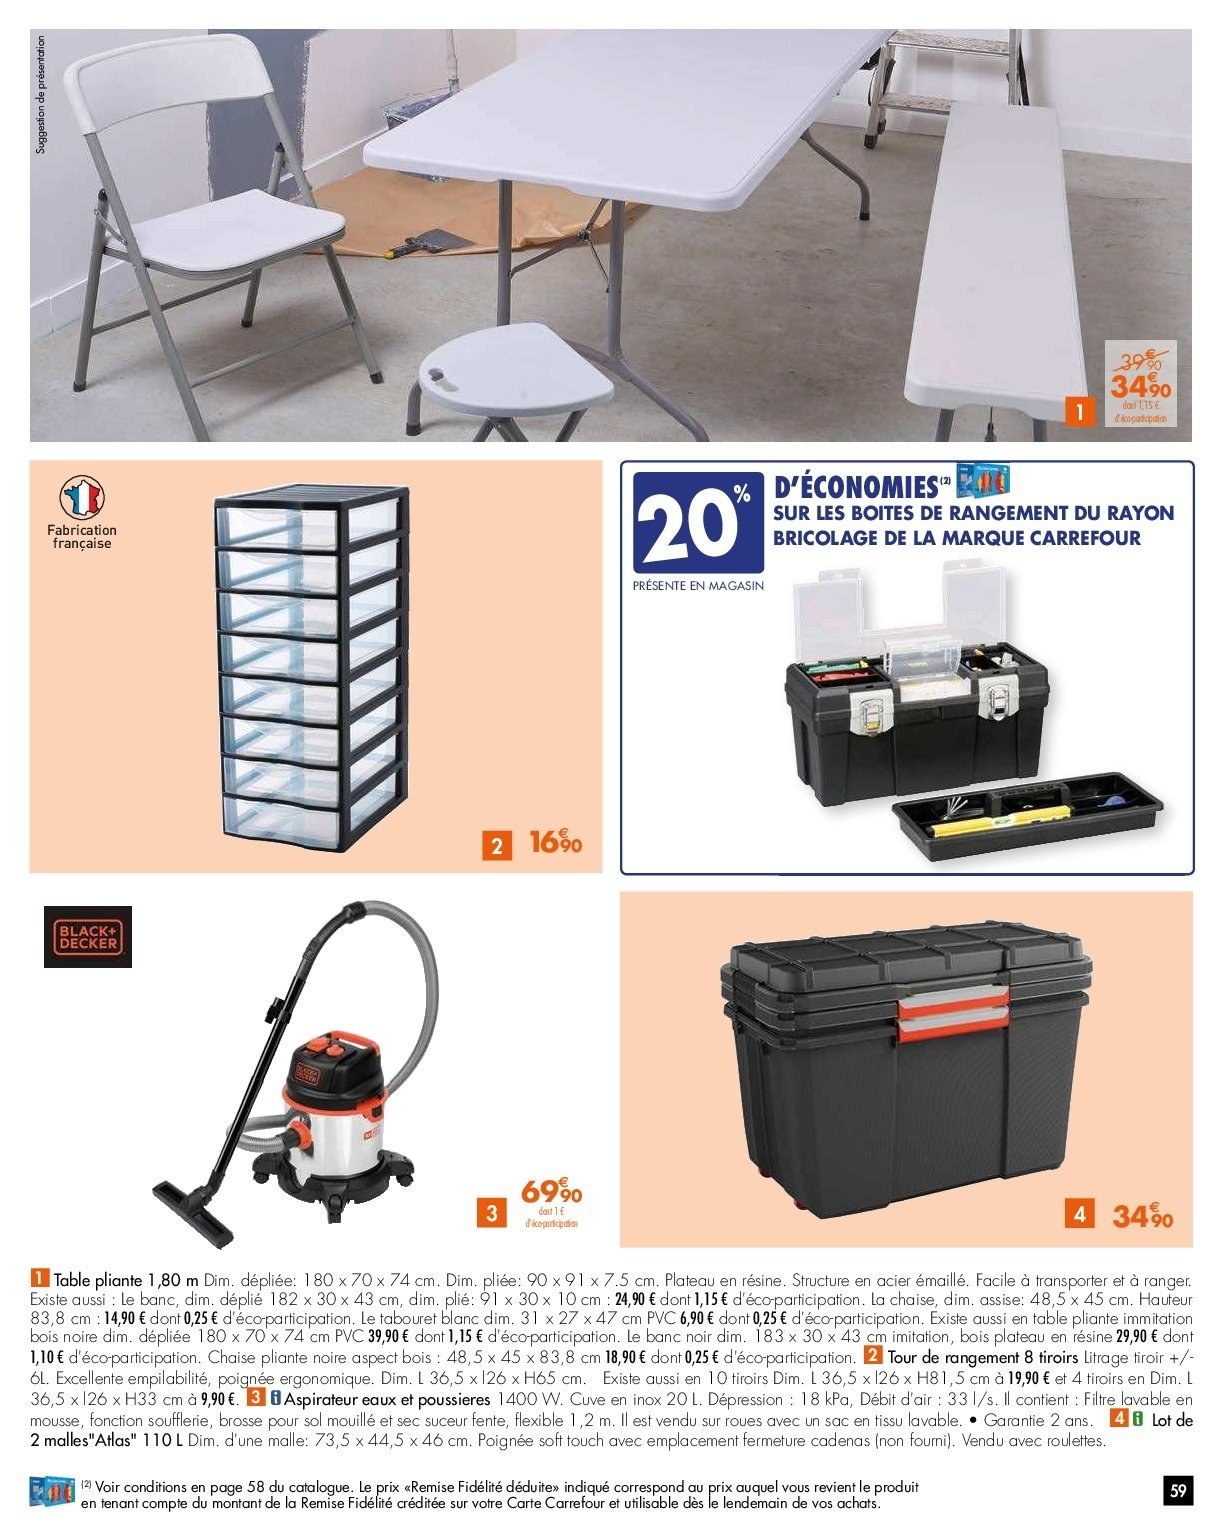 Catalogue Prospectus Pub Carrefour 05 02 2019 18 02 2019